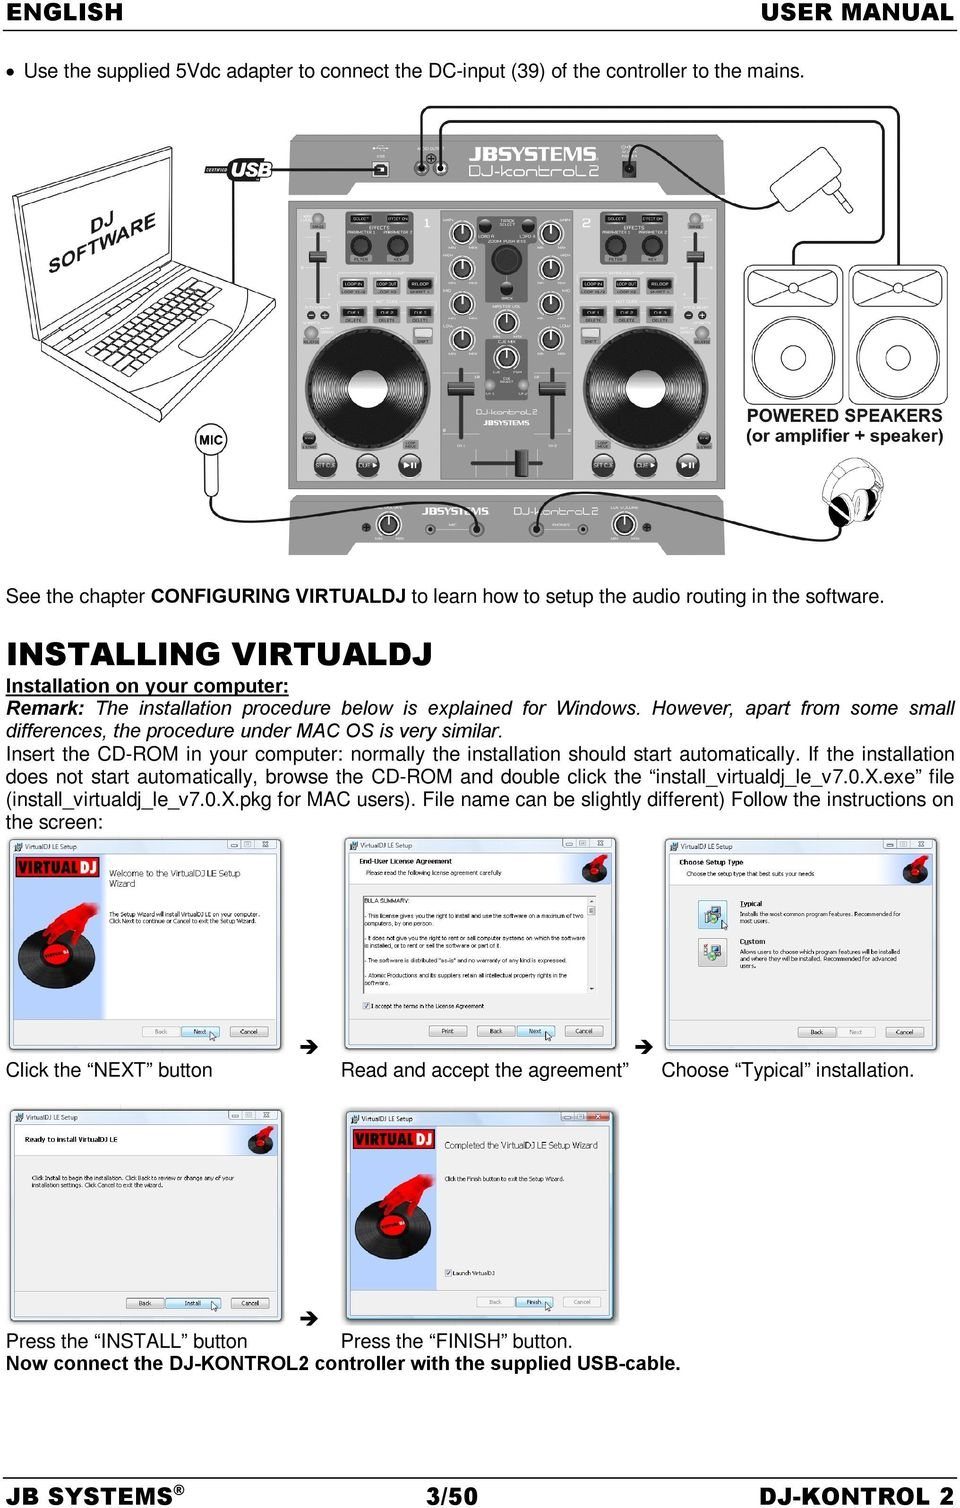 Operation Manual Features Before Use Jb Systems 1 50 Dj Kontrol 2 Pdf Virtualdj Wiring Diagram Installing Installation On Your Computer Remark The Procedure Below Is Explained For